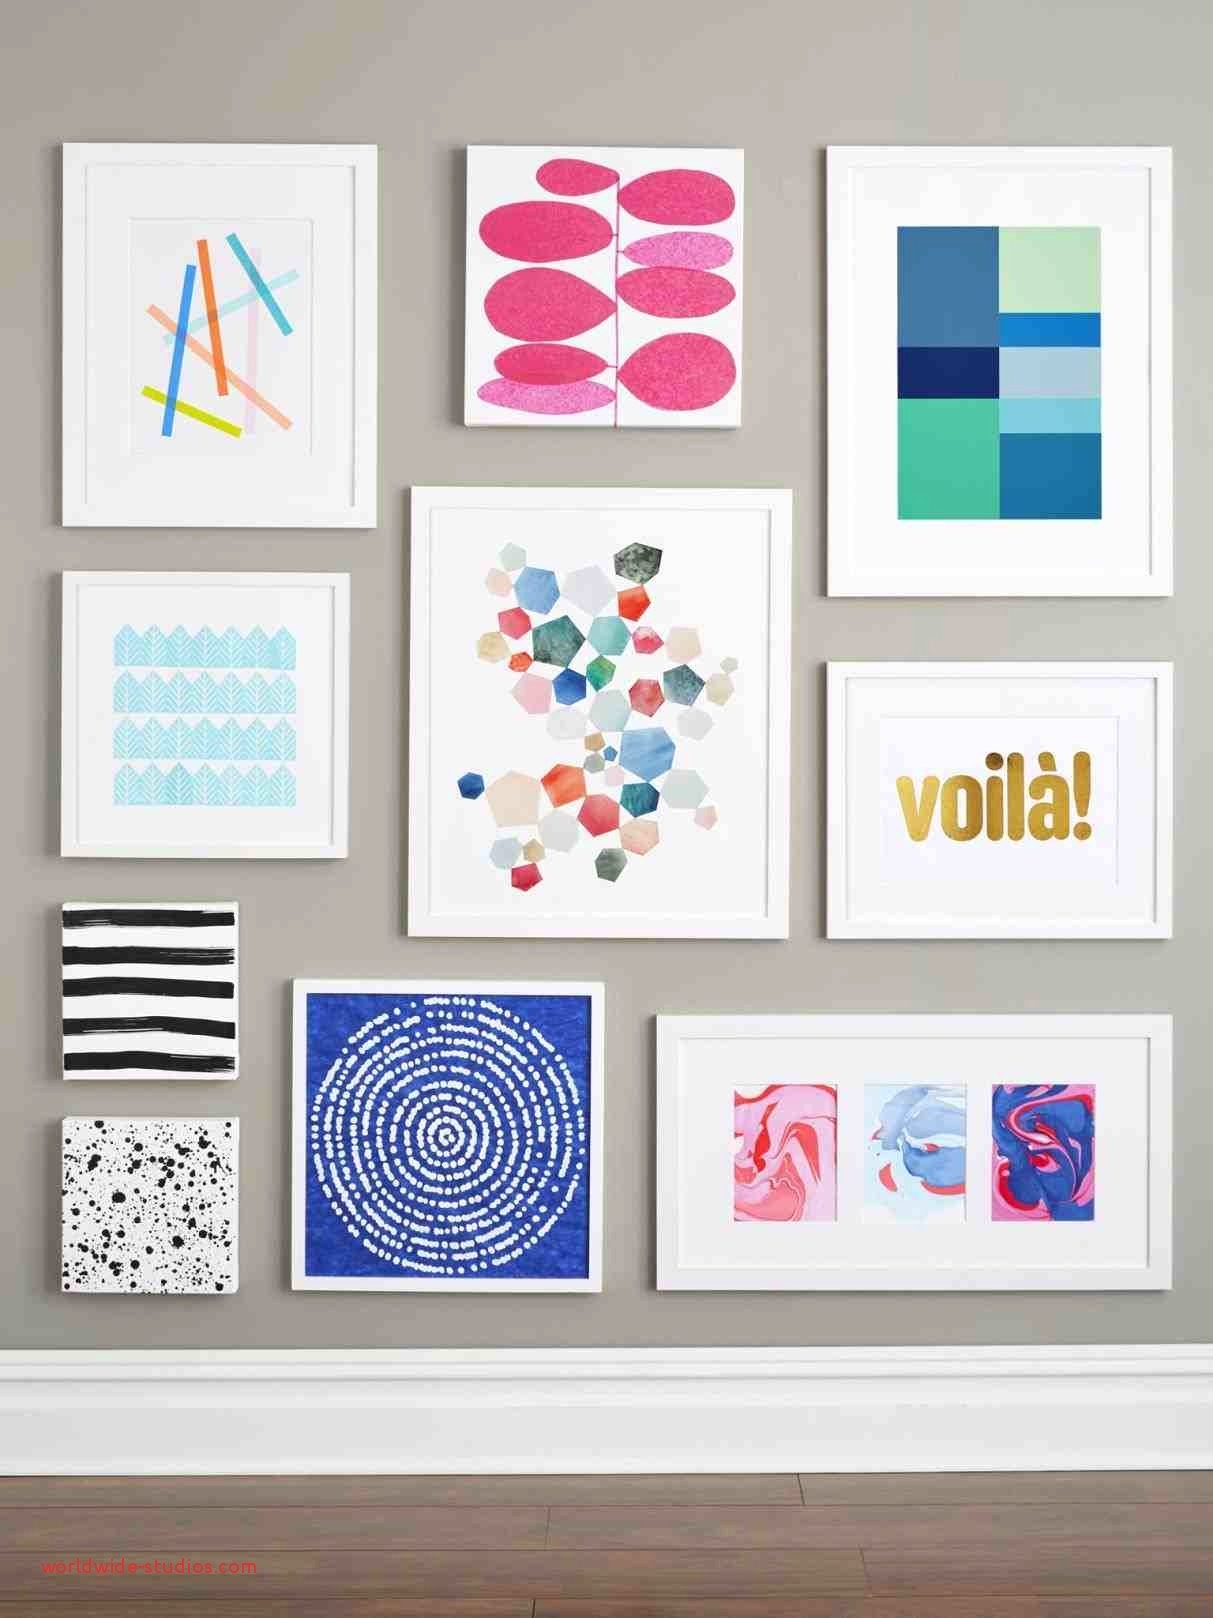 Top Result Diy Room Decor Tumblr Inspired Wall Art Beautiful Wall With Regard To Tumblr Wall Art (View 3 of 20)